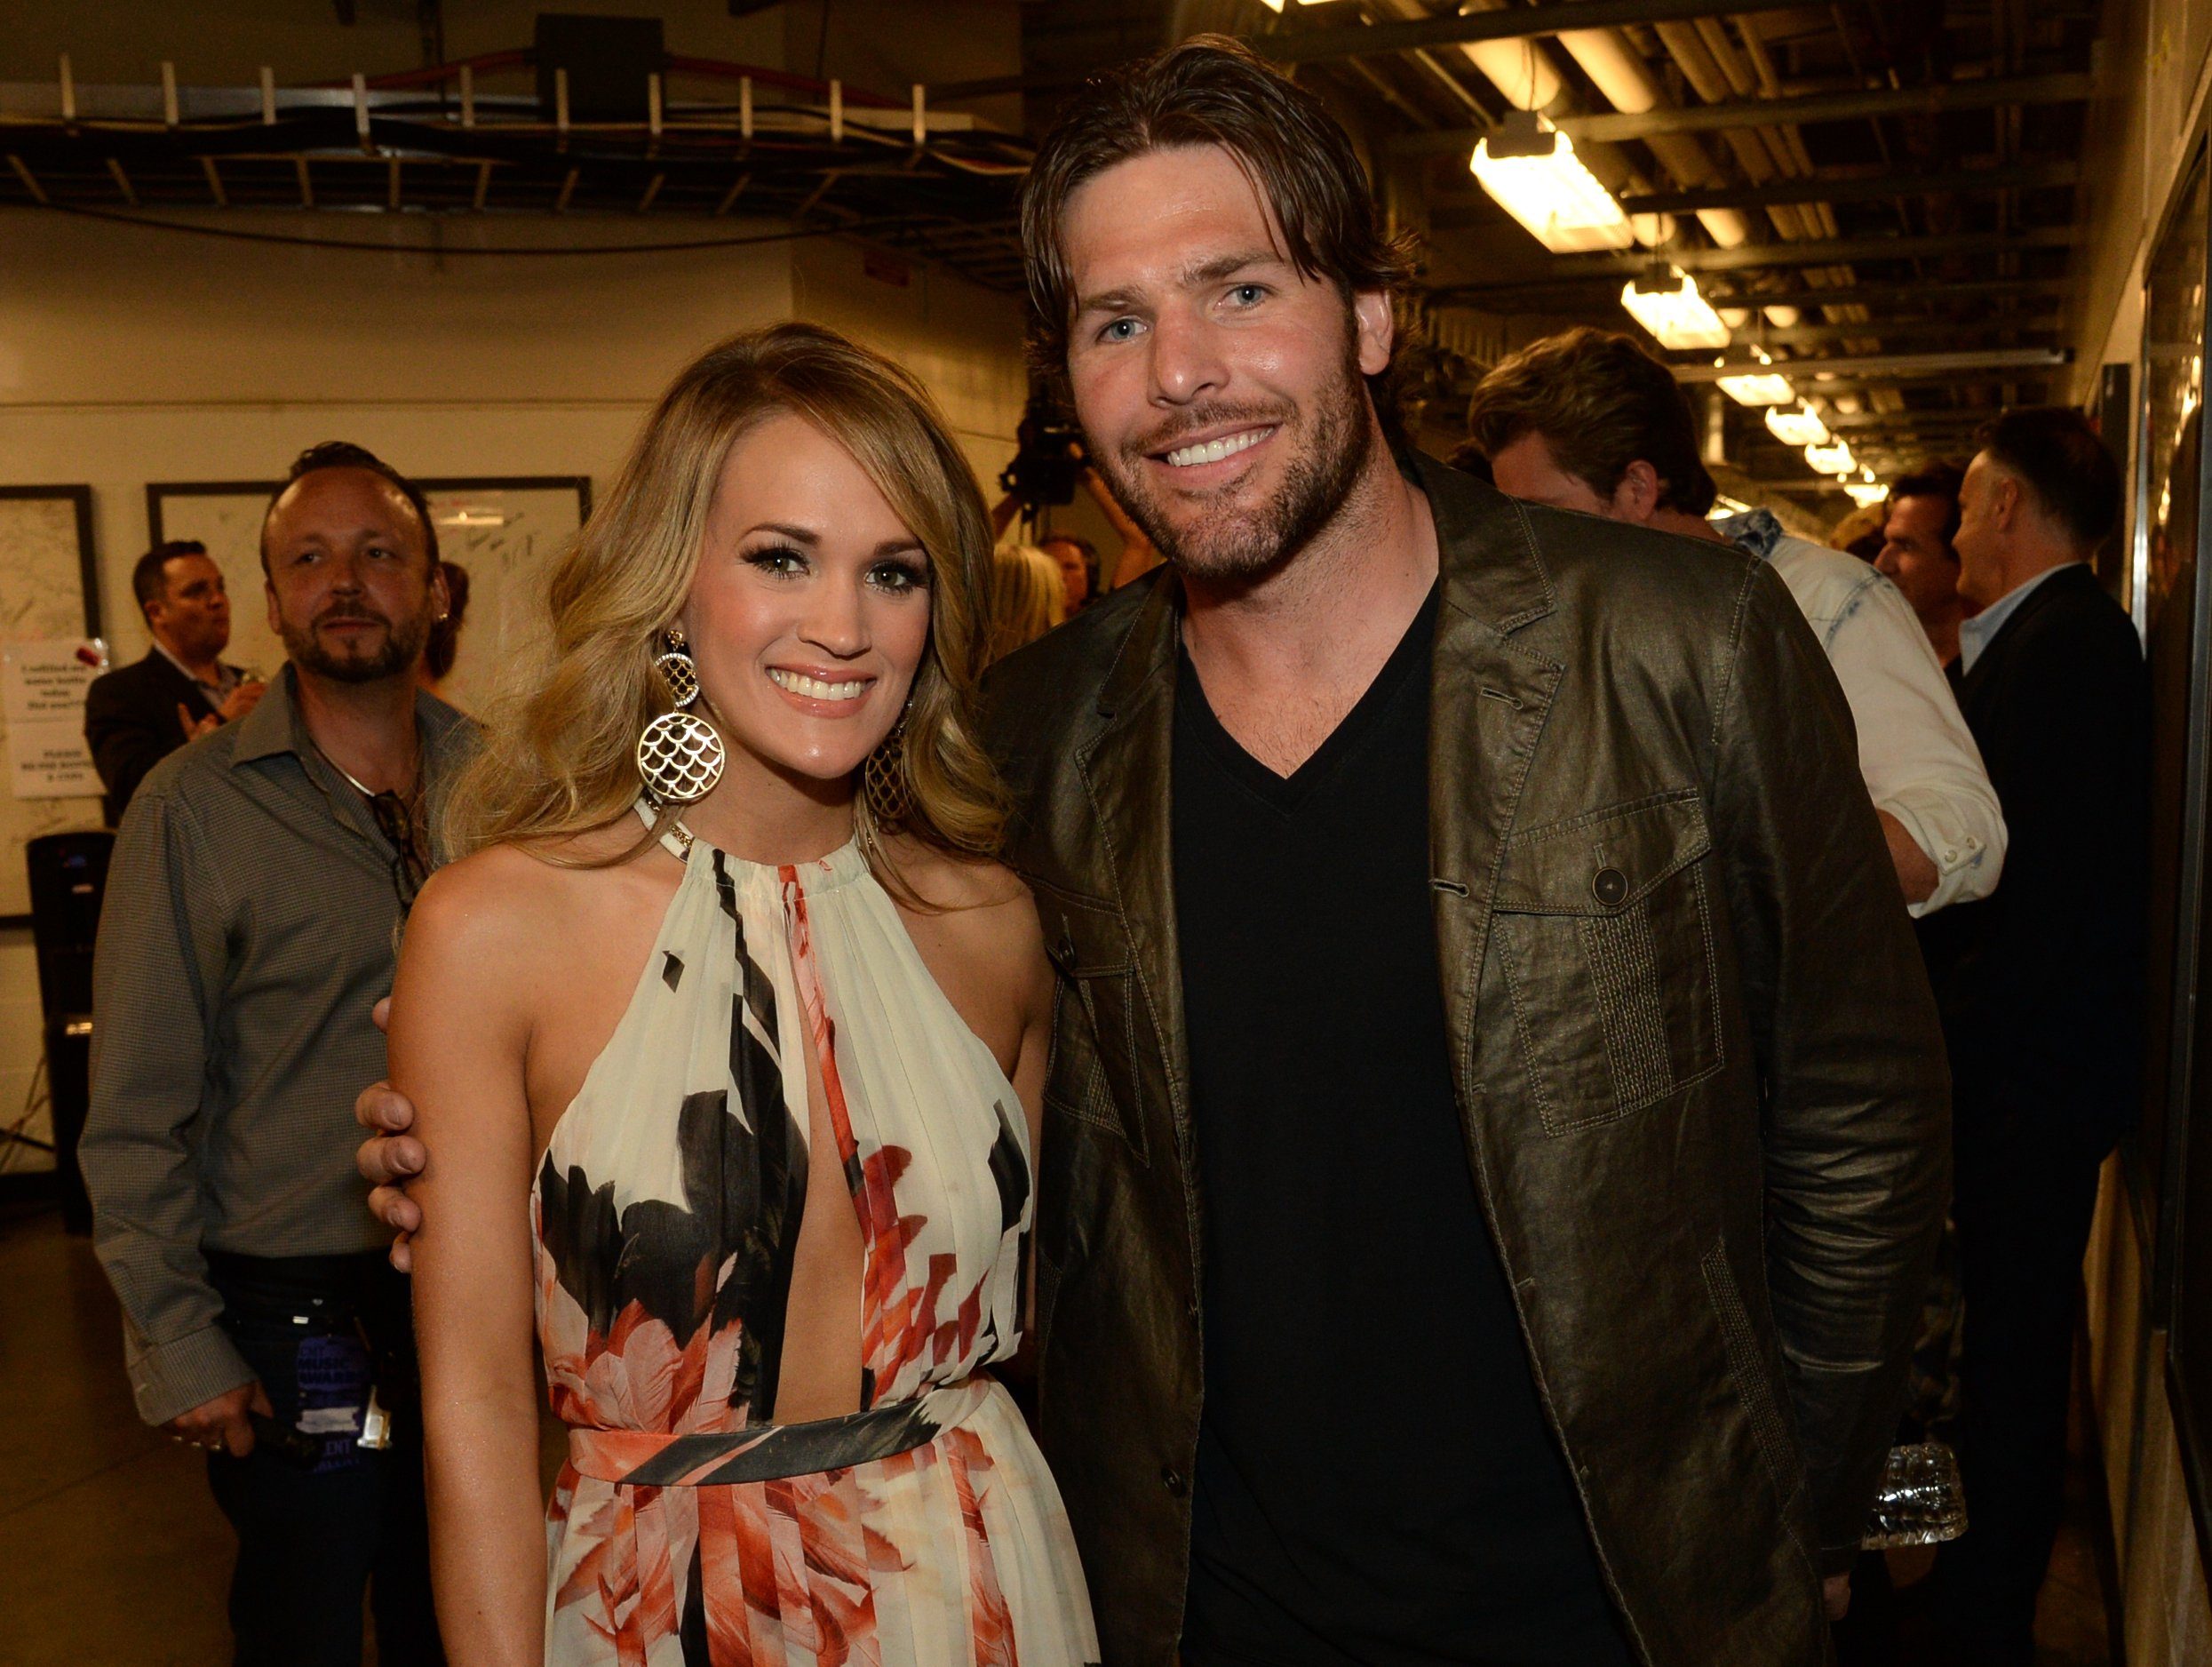 Carrie Underwood and Mike Fisher attend the 2014 CMT Music Awards at Bridgestone Arena on June 4, 2014 in Nashville, Tennessee | Photo: Getty Images